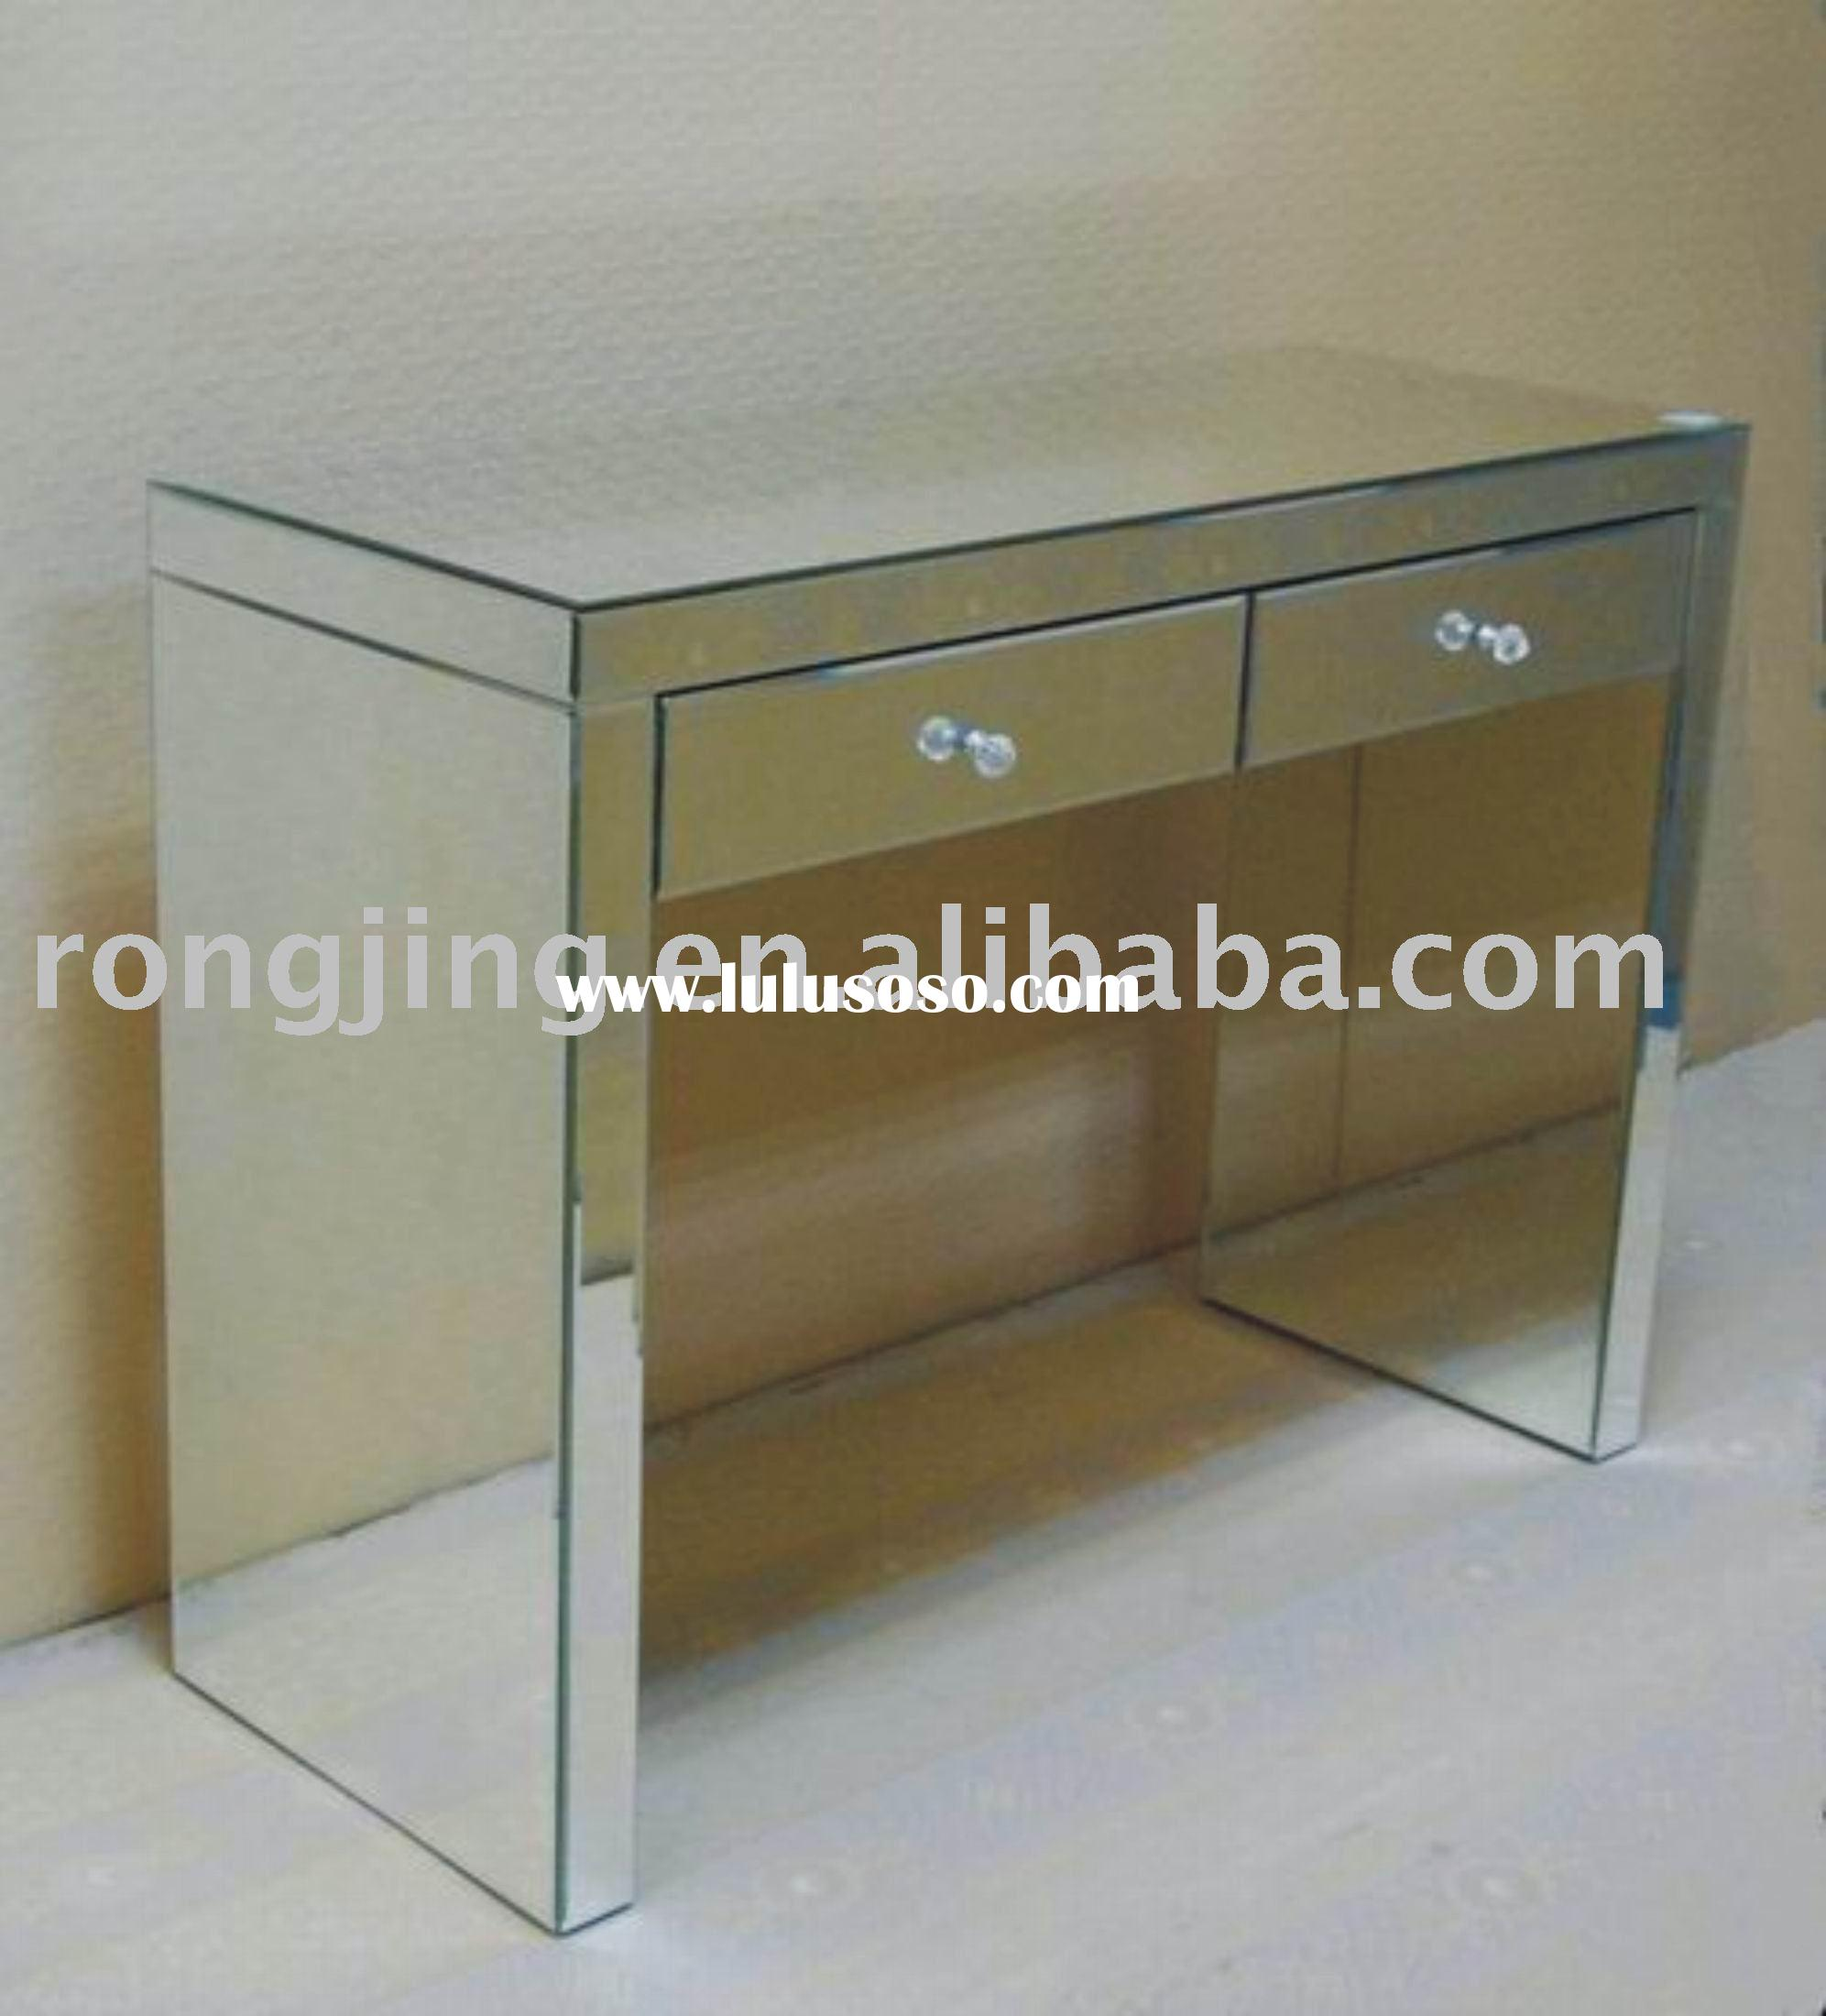 Mirror Furniture,mirror Table,glass Table,long Table With Two Drawers